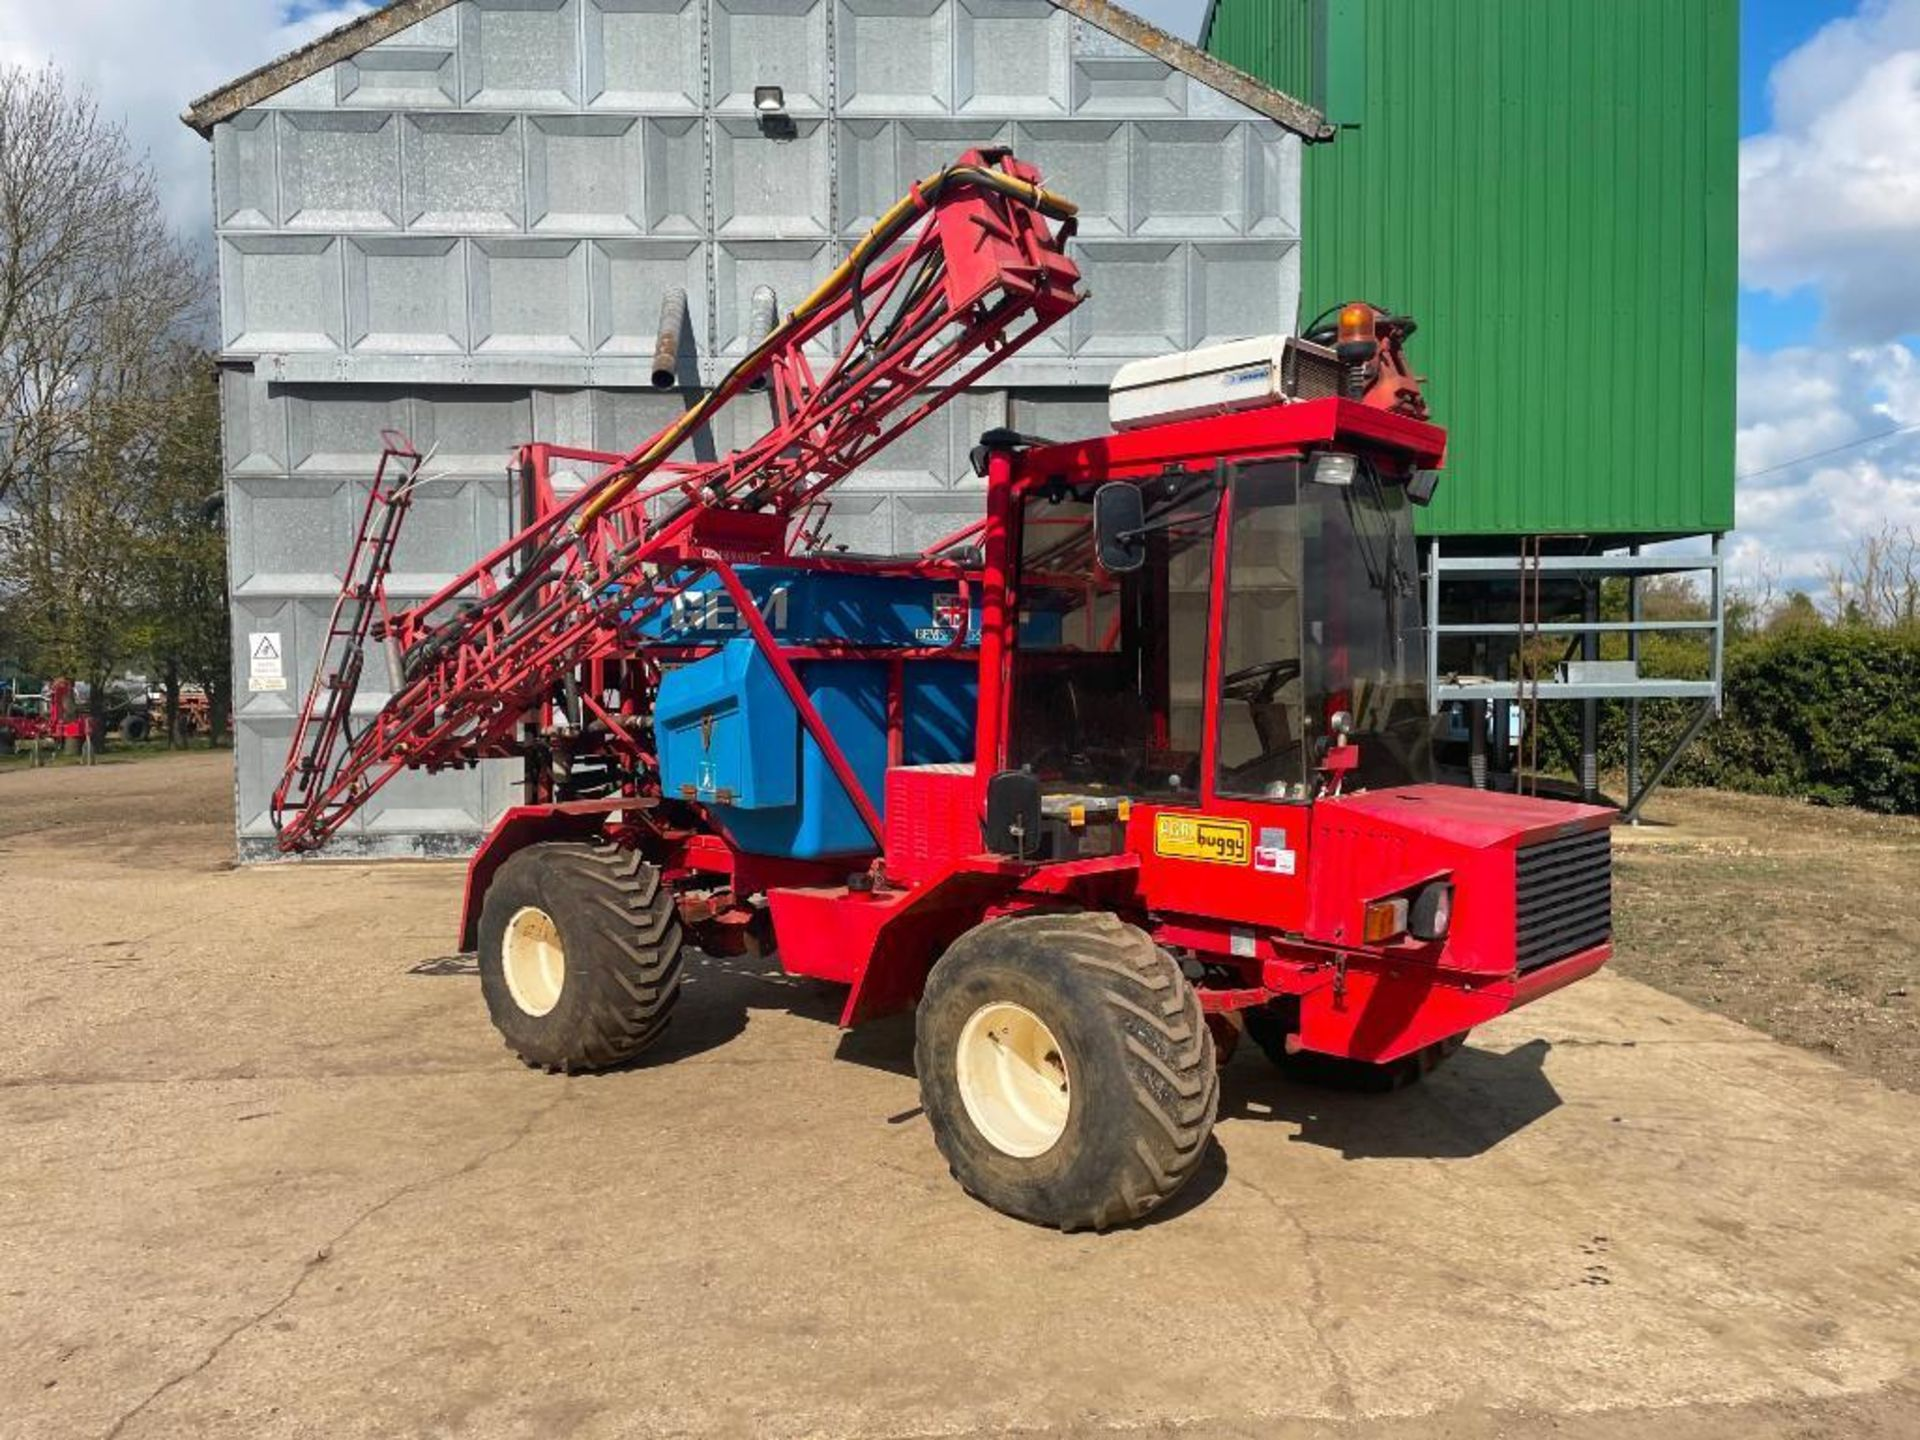 1995 Frazier Agri-Buggy SD with GEM 24m self propelled sprayer, 1500l tank on 38x20.00-16 wheels and - Image 24 of 27